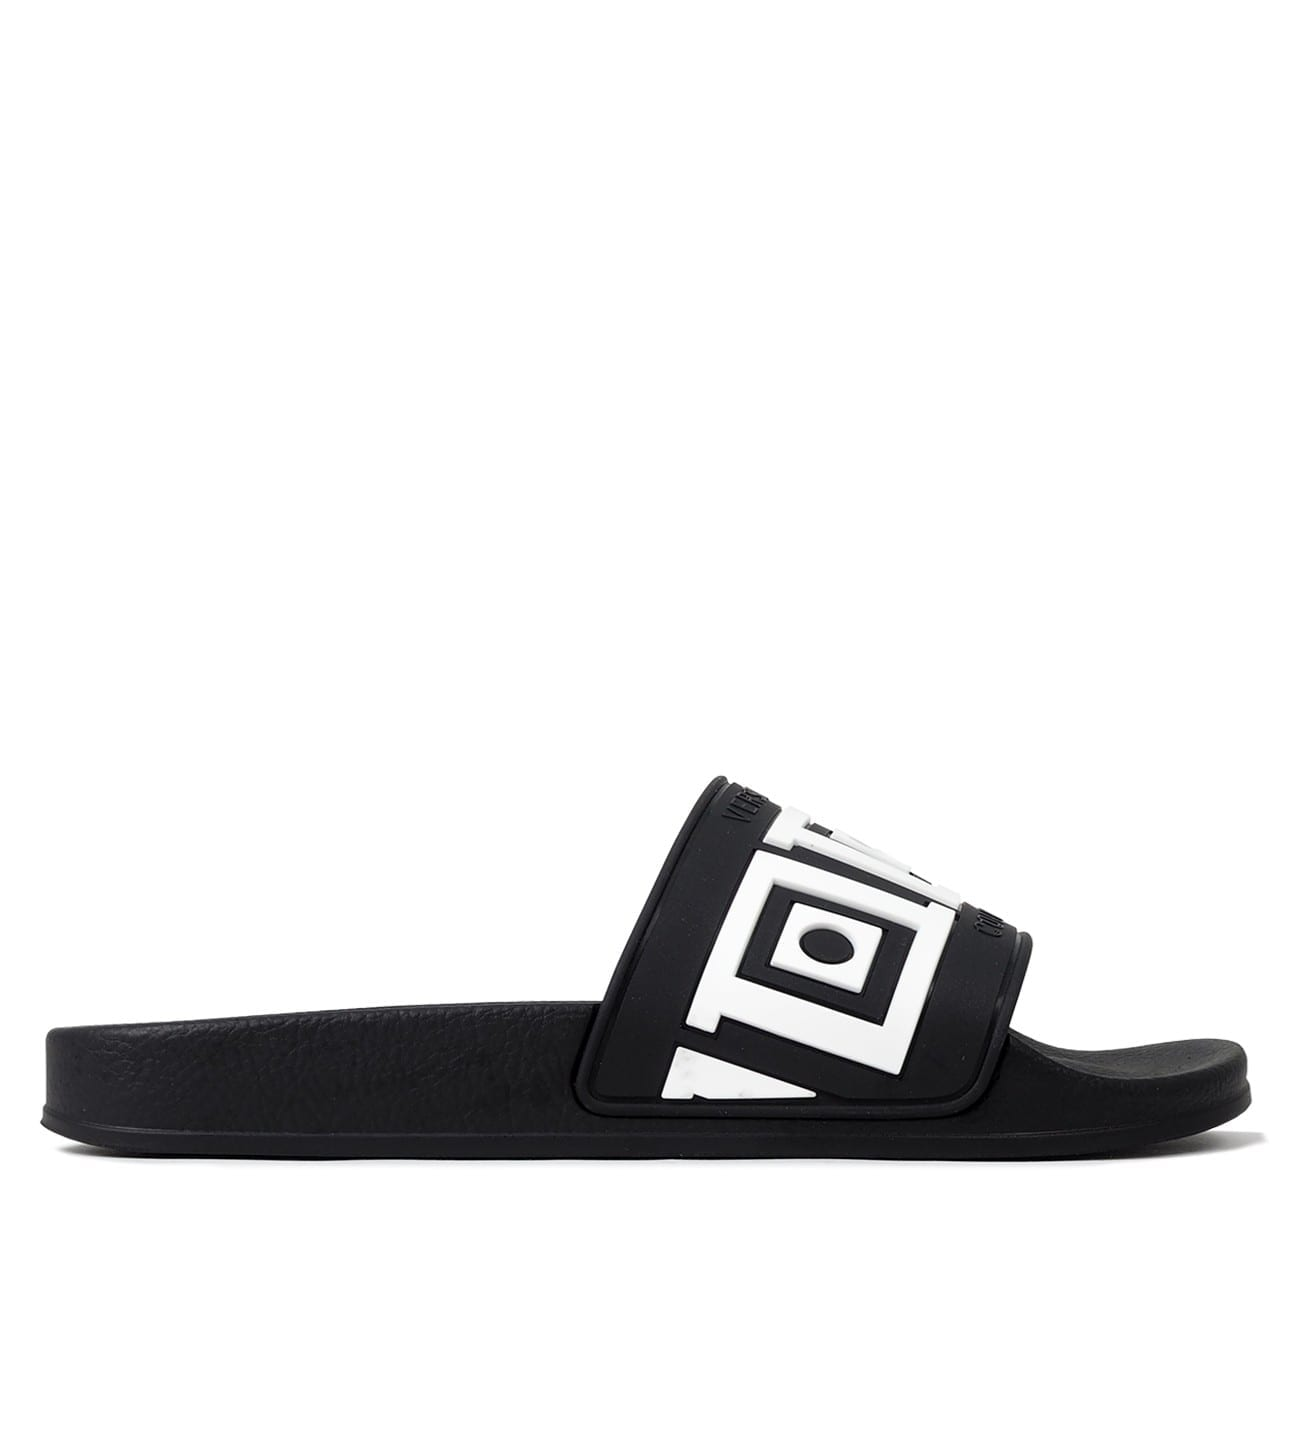 Image of   Scarpe, slippers black and white greek inspired